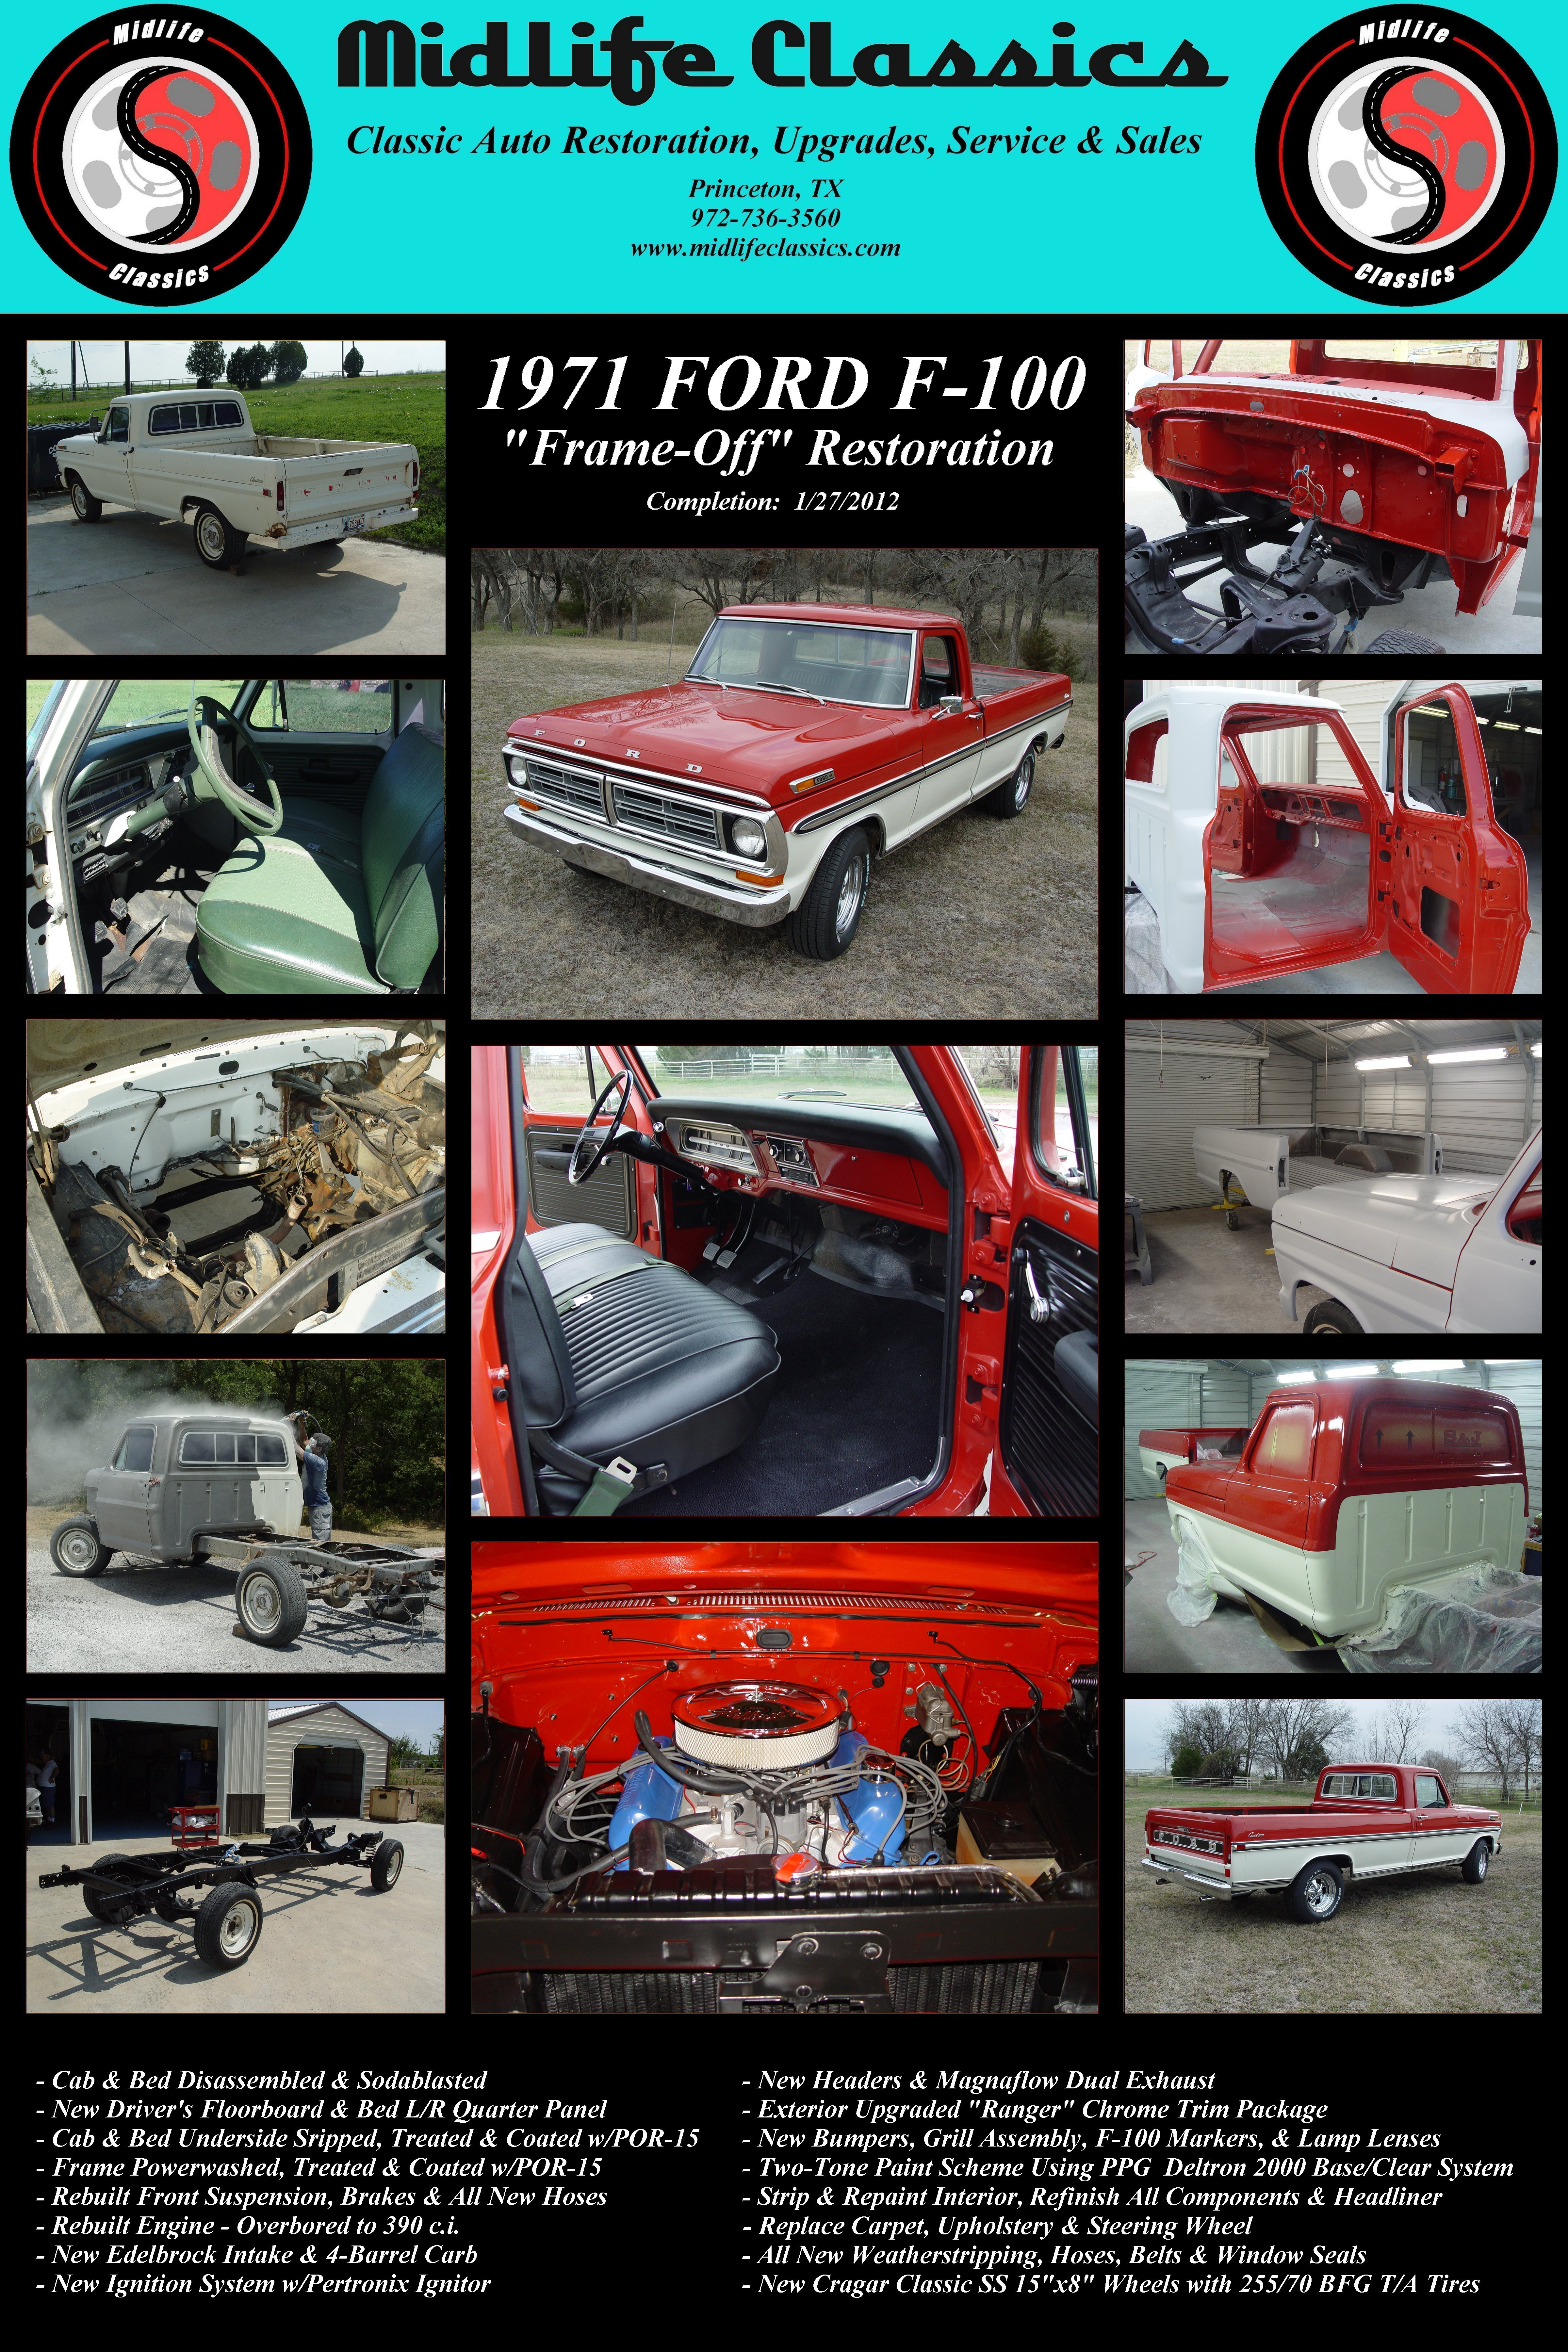 Midlife Classics 1971 Ford F 100 Restoration Bronco Interior When The Owner Of Big Red Came By To Pick Up That We Had Finished For Him He Brought And Dropped Off This Pickup Truck